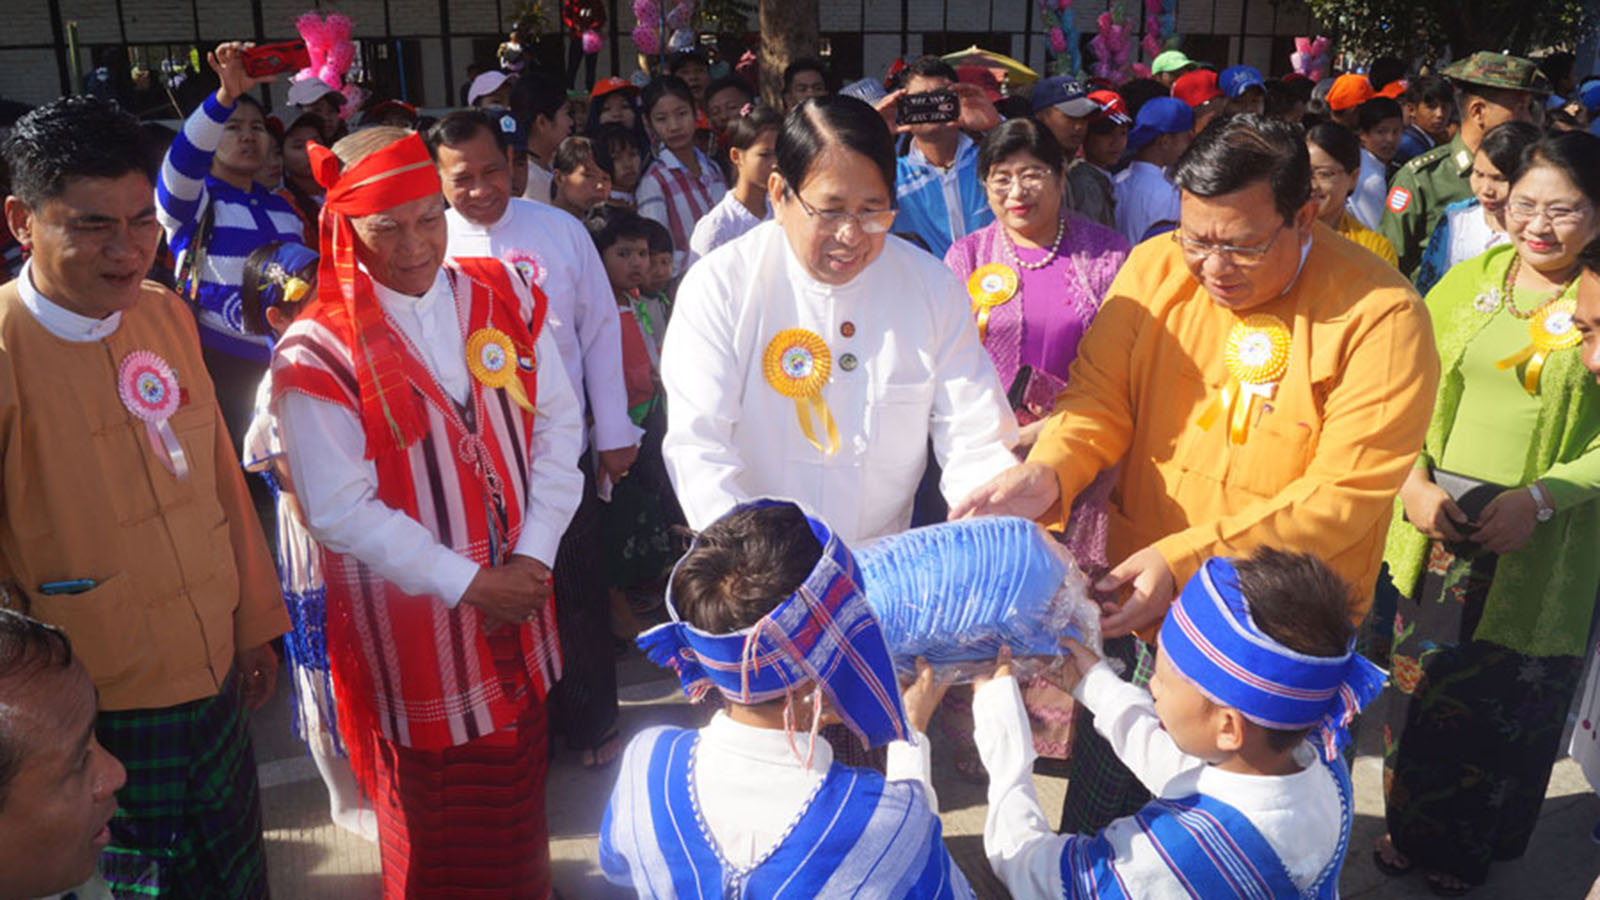 Union Minister Dr Pe Myint and Ayeyawady Region Chief Minister U Hla Moe Aung present shirts to students at the Children Literary Festival in Kyonpyaw, Ayeyawady Region yesterday.Photo: Soe Min Oo (IPRD)